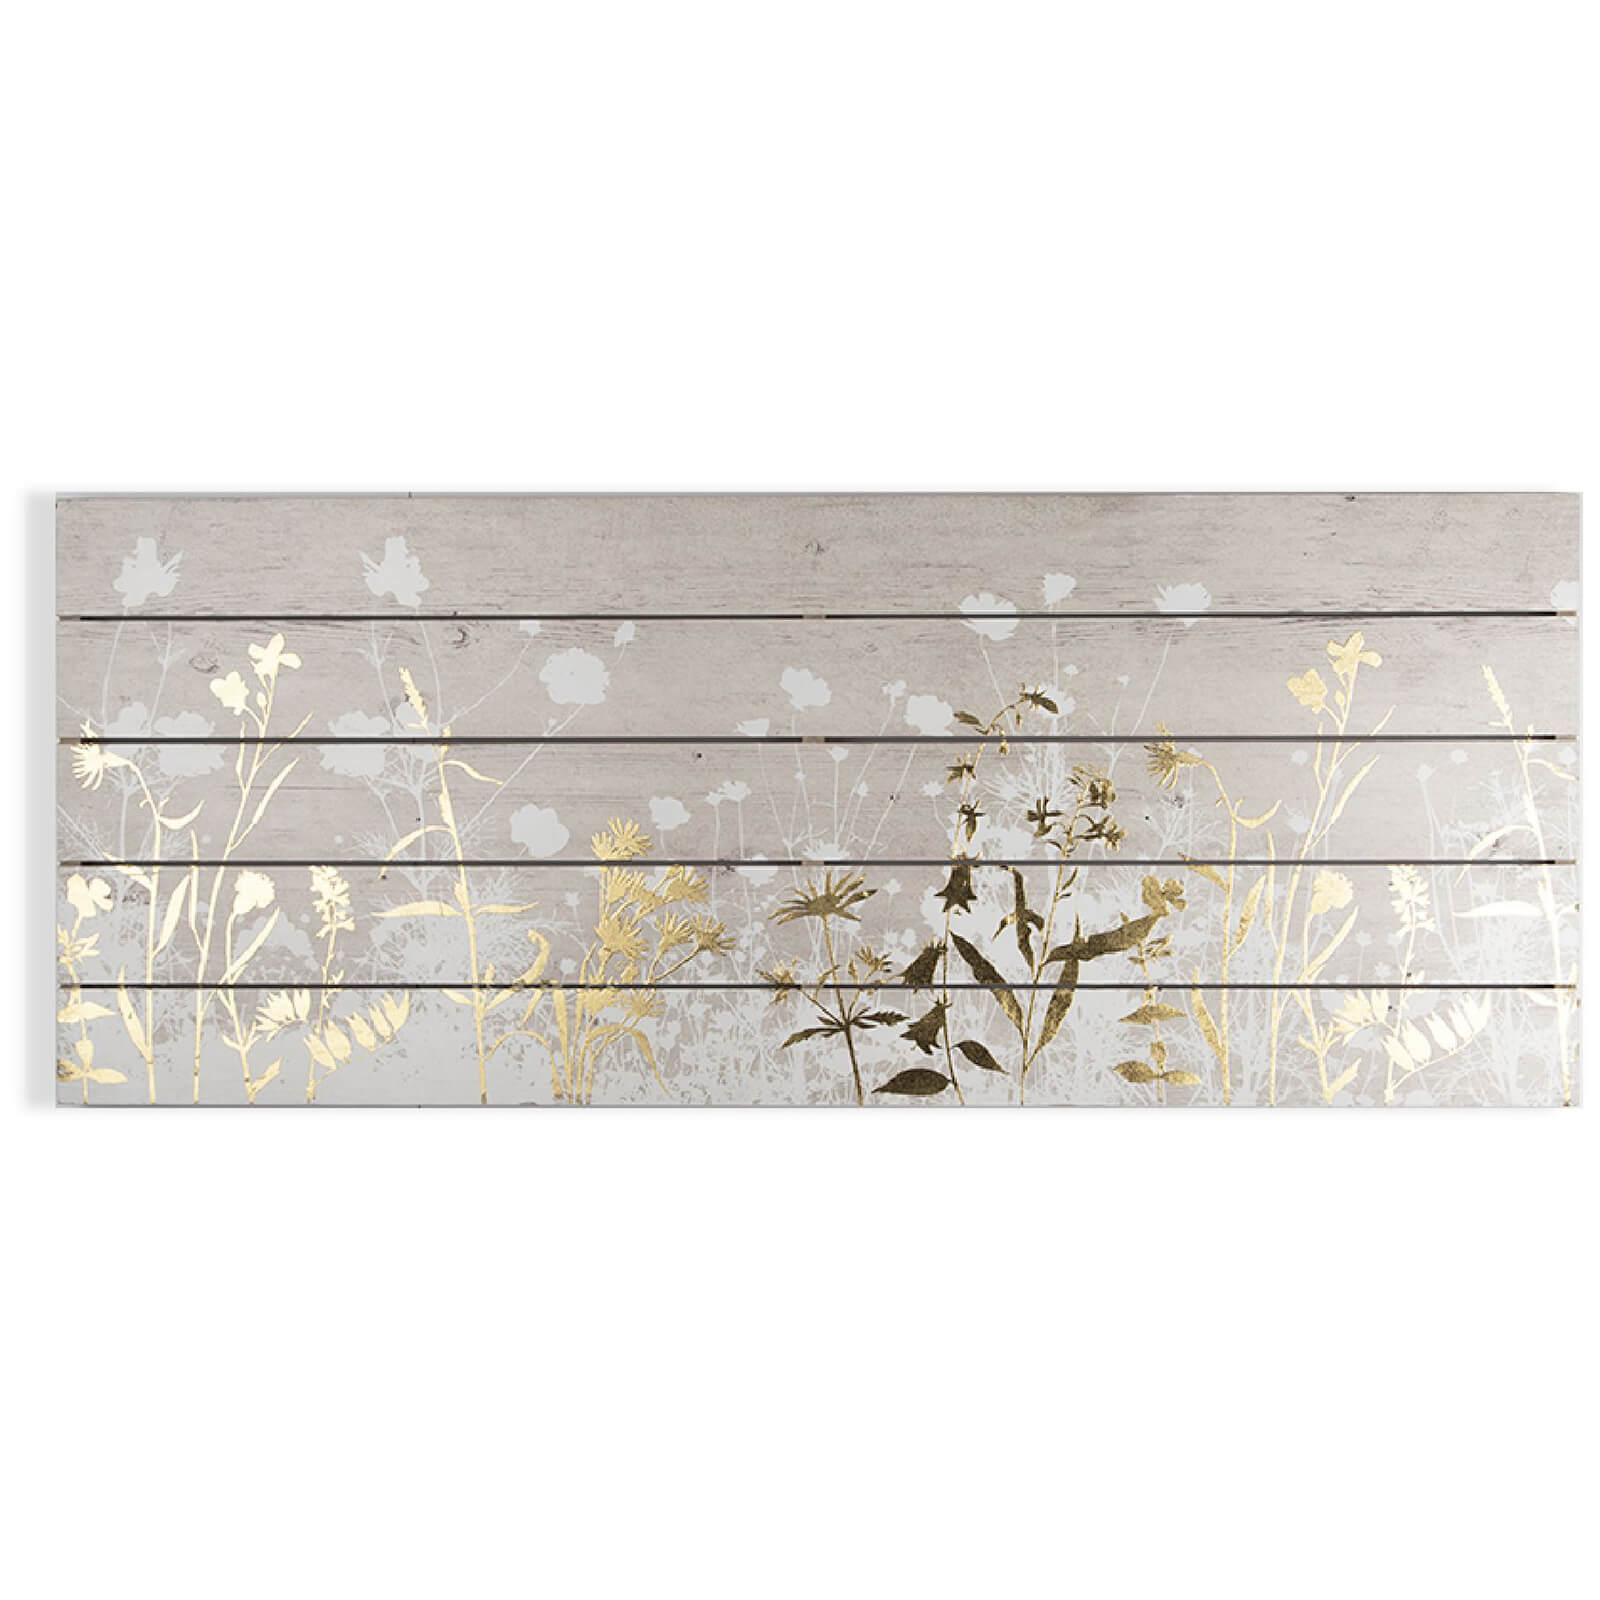 Art for the Home Metallic Wood Meadow Print on Wood